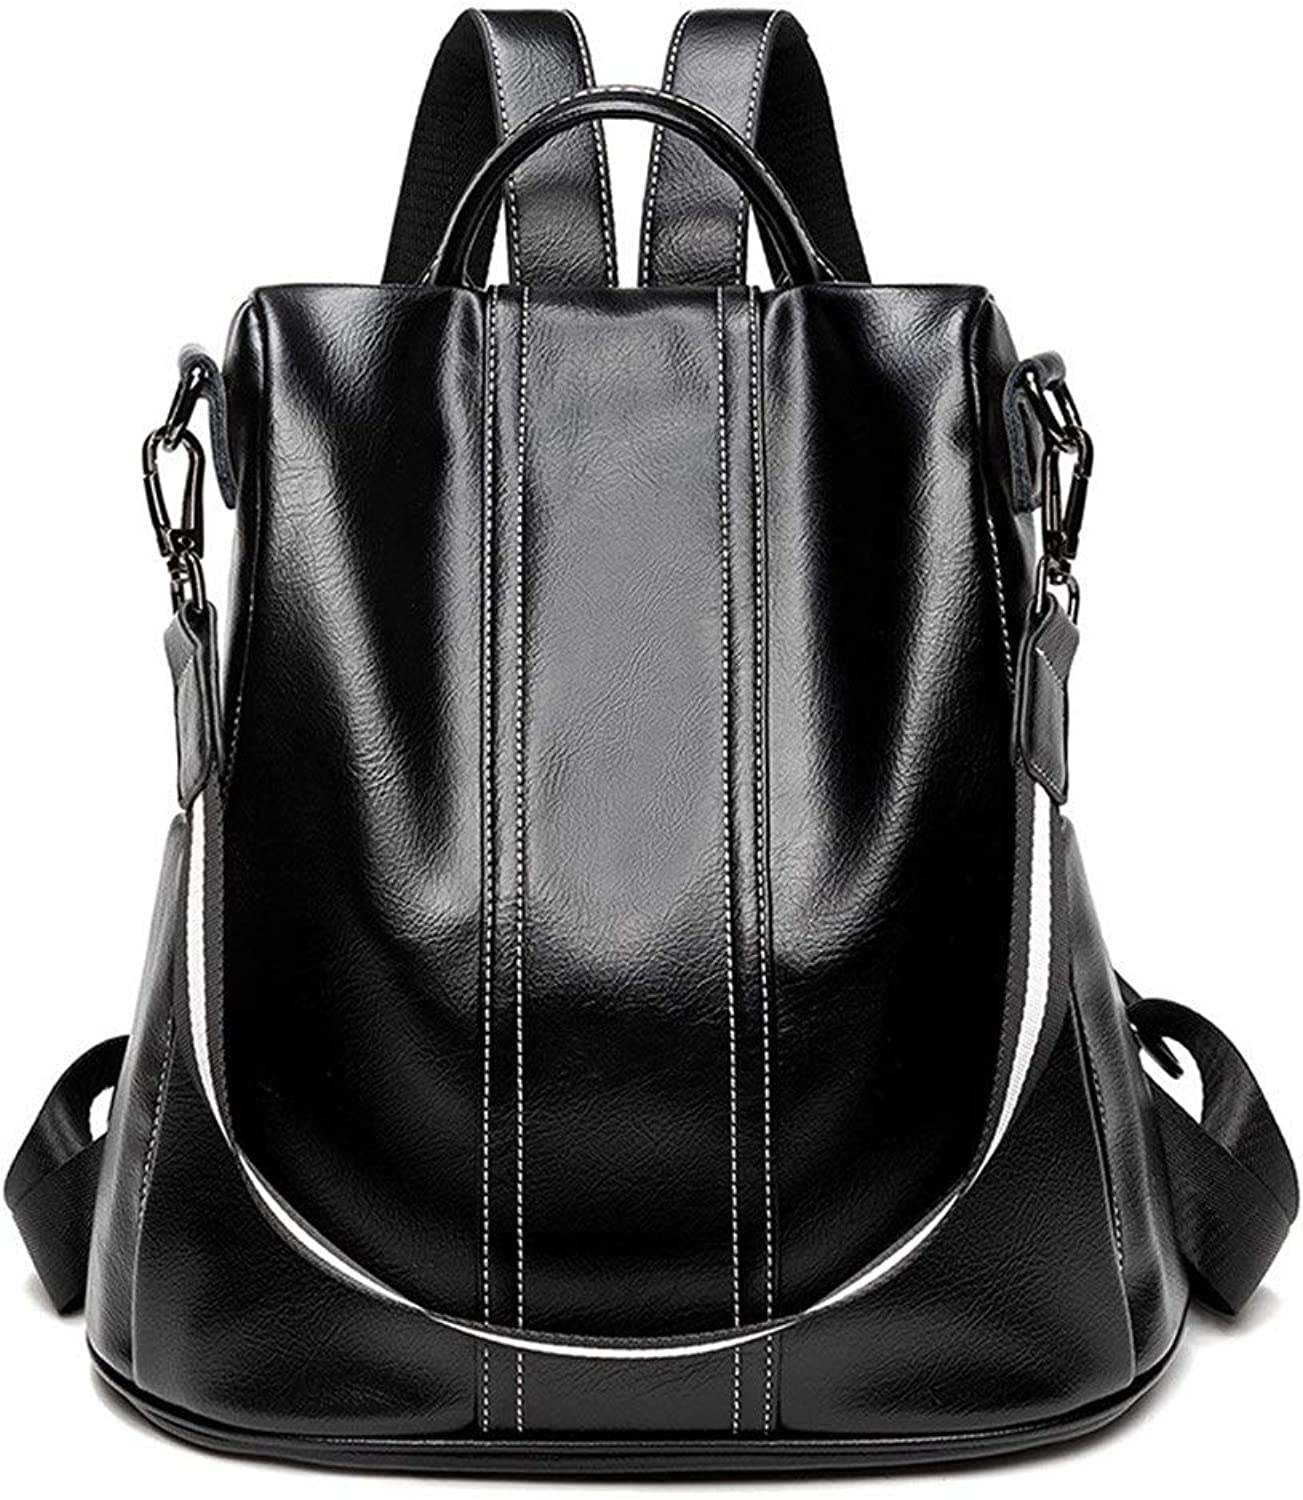 Stylish Women's Backpack Soft Leather Schoolbag Multi-Functional Leisure Outdoor Ladies Travel Backpack (color   Black, Size   One Size)